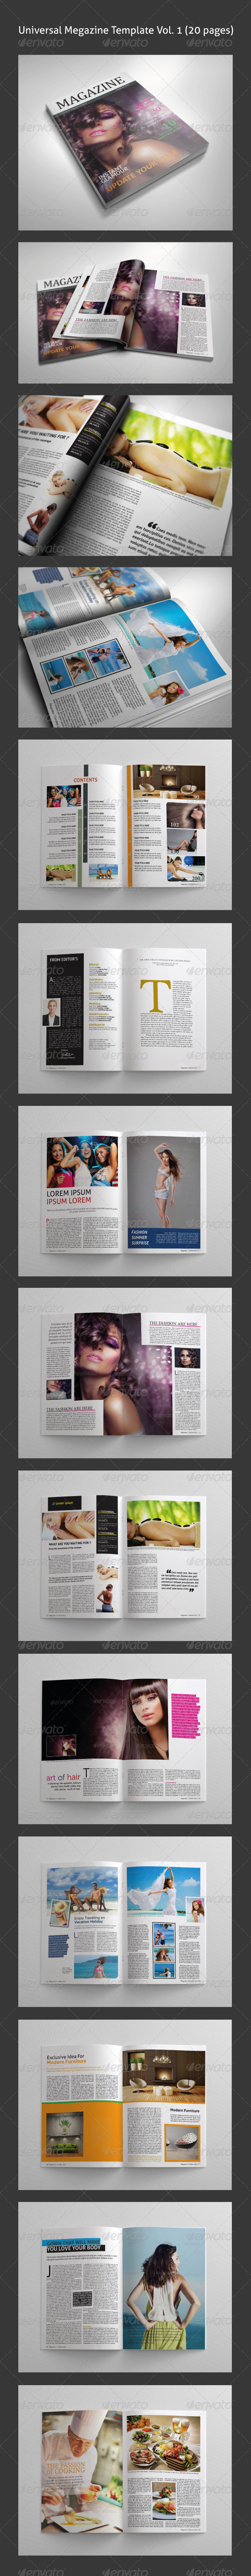 GraphicRiver Universal Magazine template Vol 01 20 pages 4566236